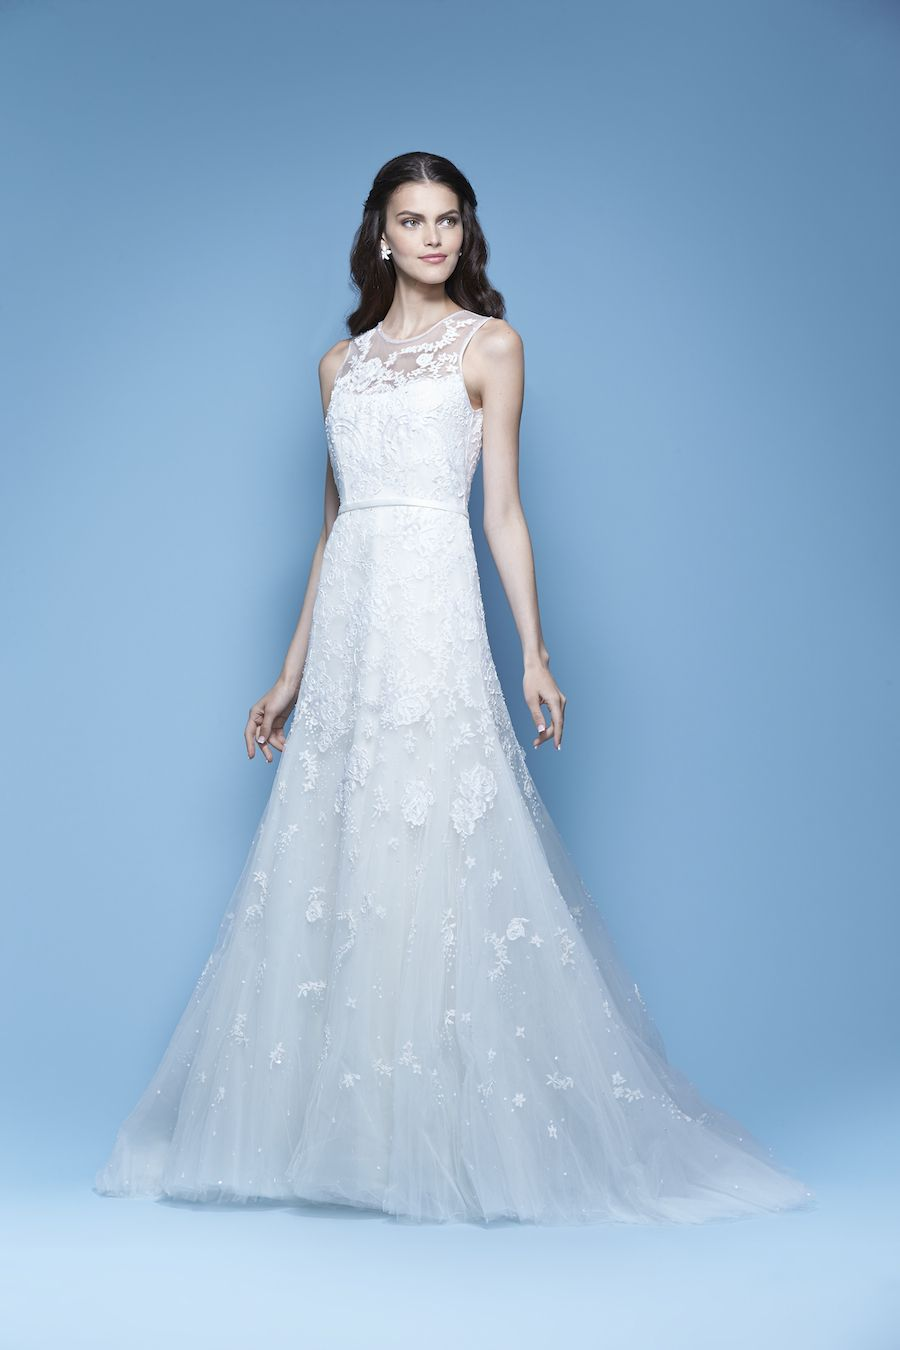 Modern Carolina Herrera Short Wedding Dresses Composition - All ...